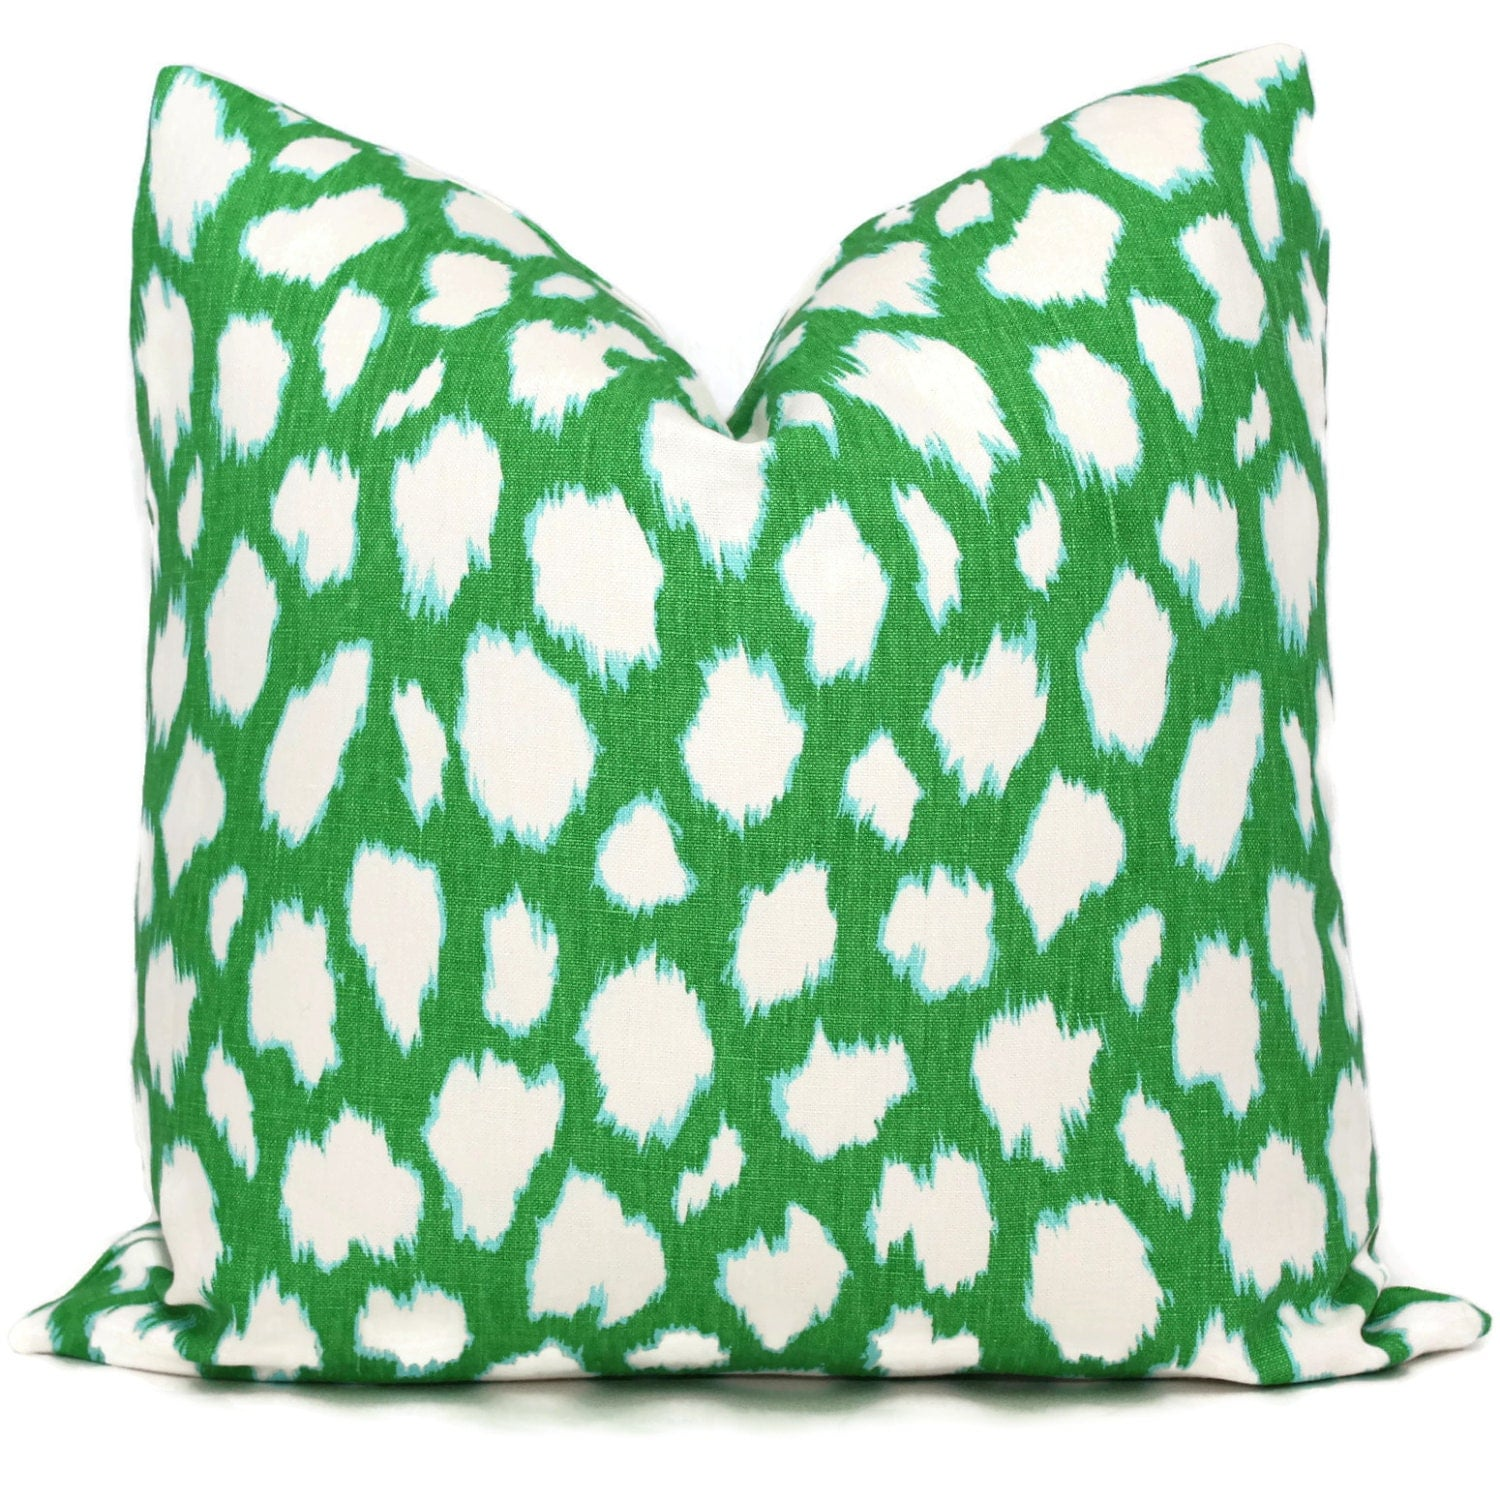 Kelly Green Leocat Pillow Cover As seen in HGTV magazine